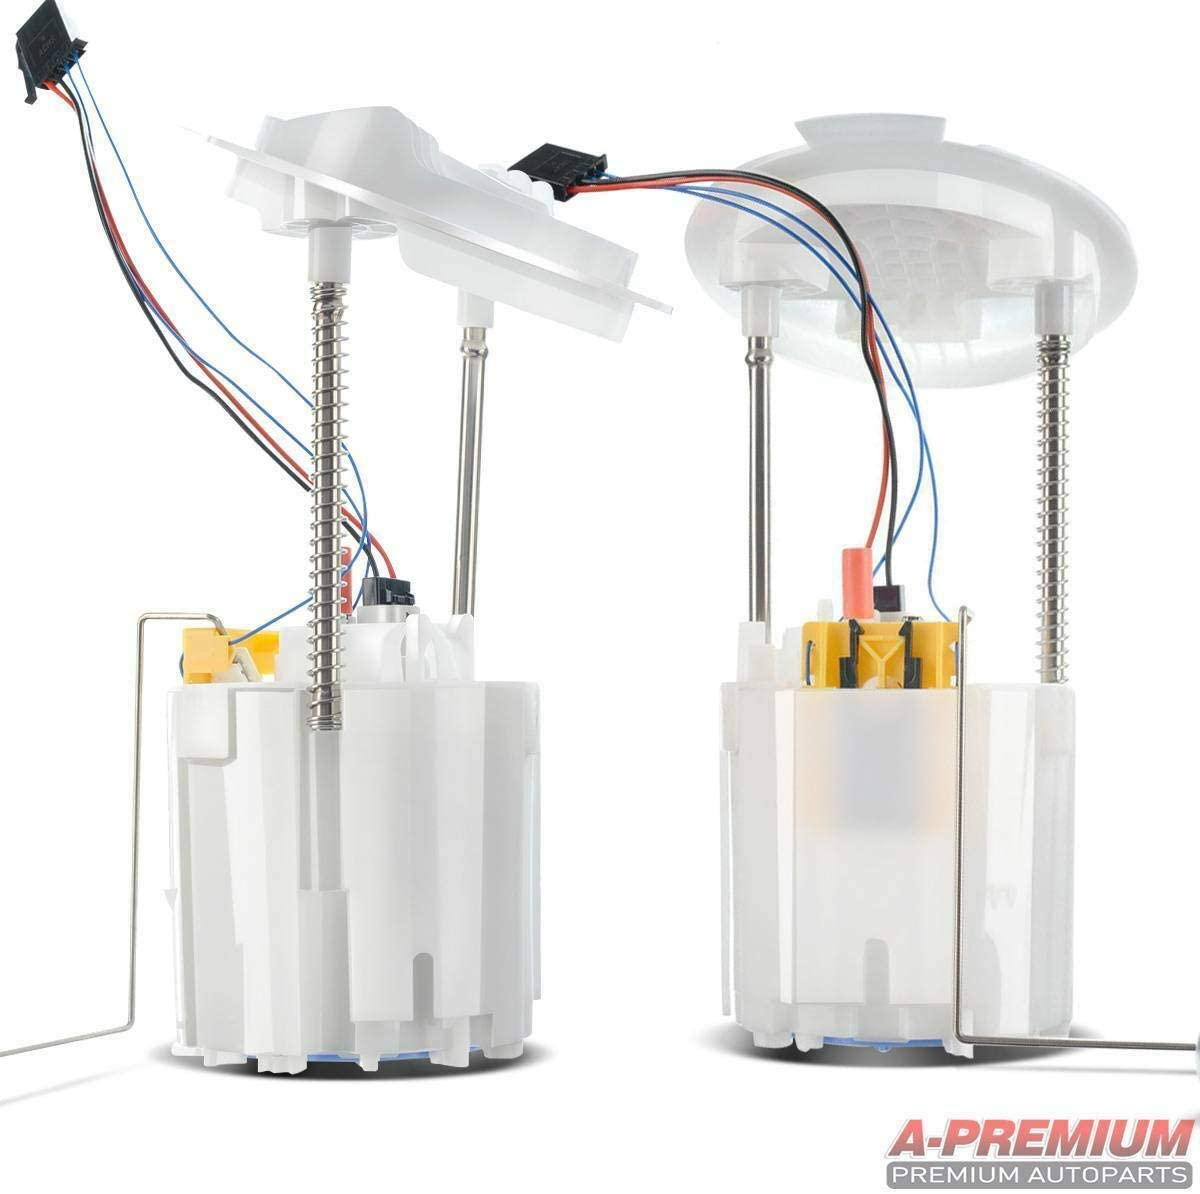 VioletLisa Electric Fuel Pump Max 47% OFF Compatible with 30 Ranking TOP18 C_hrysler 05-10